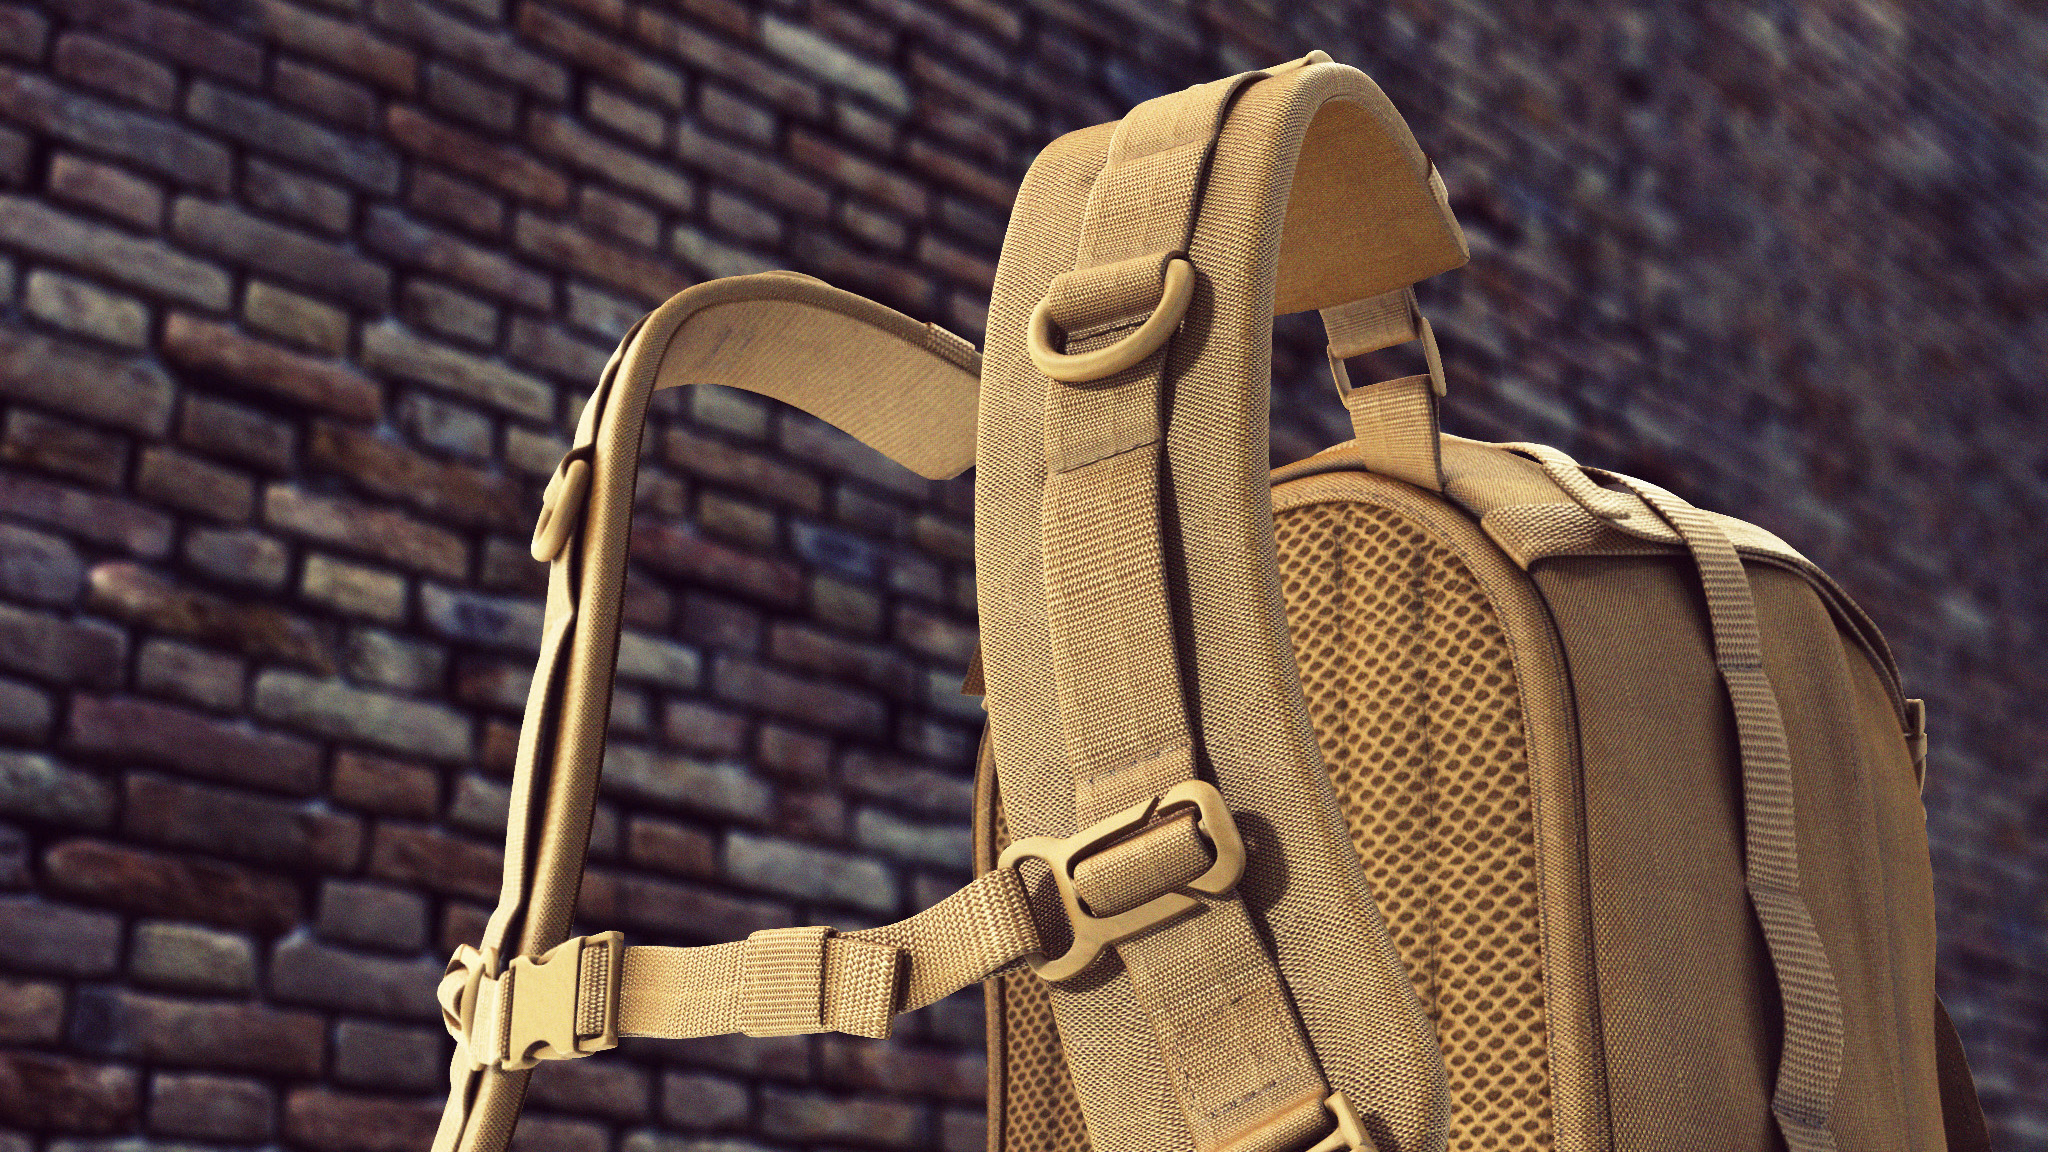 Backpack_shot1_crop16X9.jpg